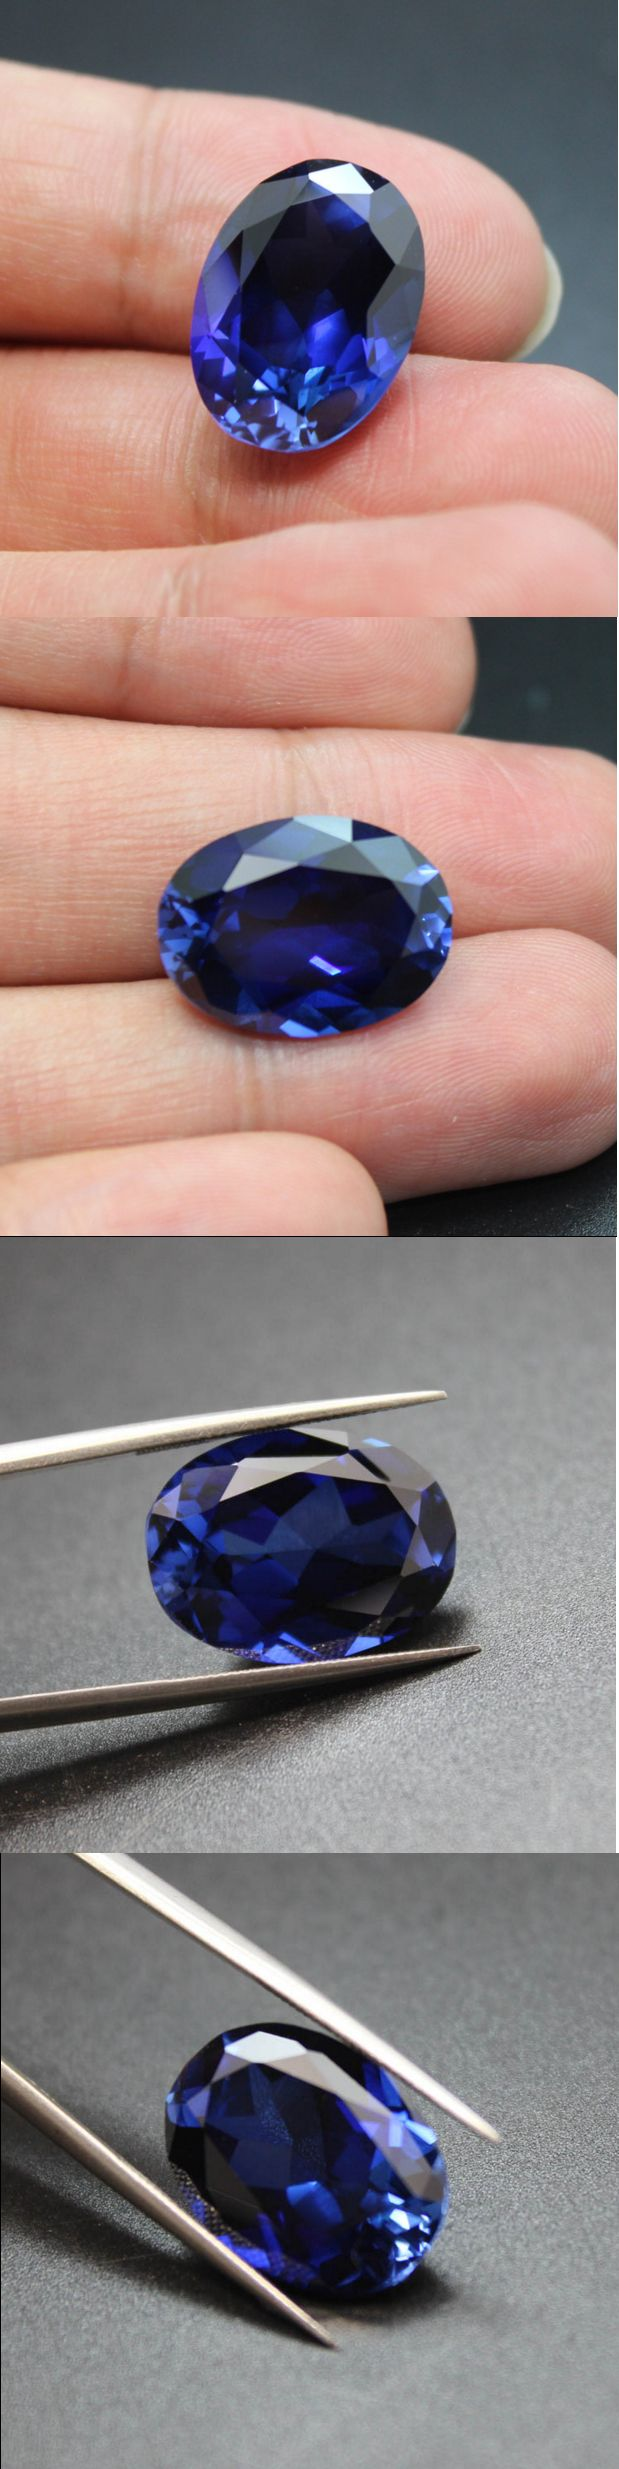 Tanzanite 4195: Natural Powder Melting Tanzanite Gemstone Aaaaa Blue Color Oval Loose Stones -> BUY IT NOW ONLY: $49.78 on eBay!